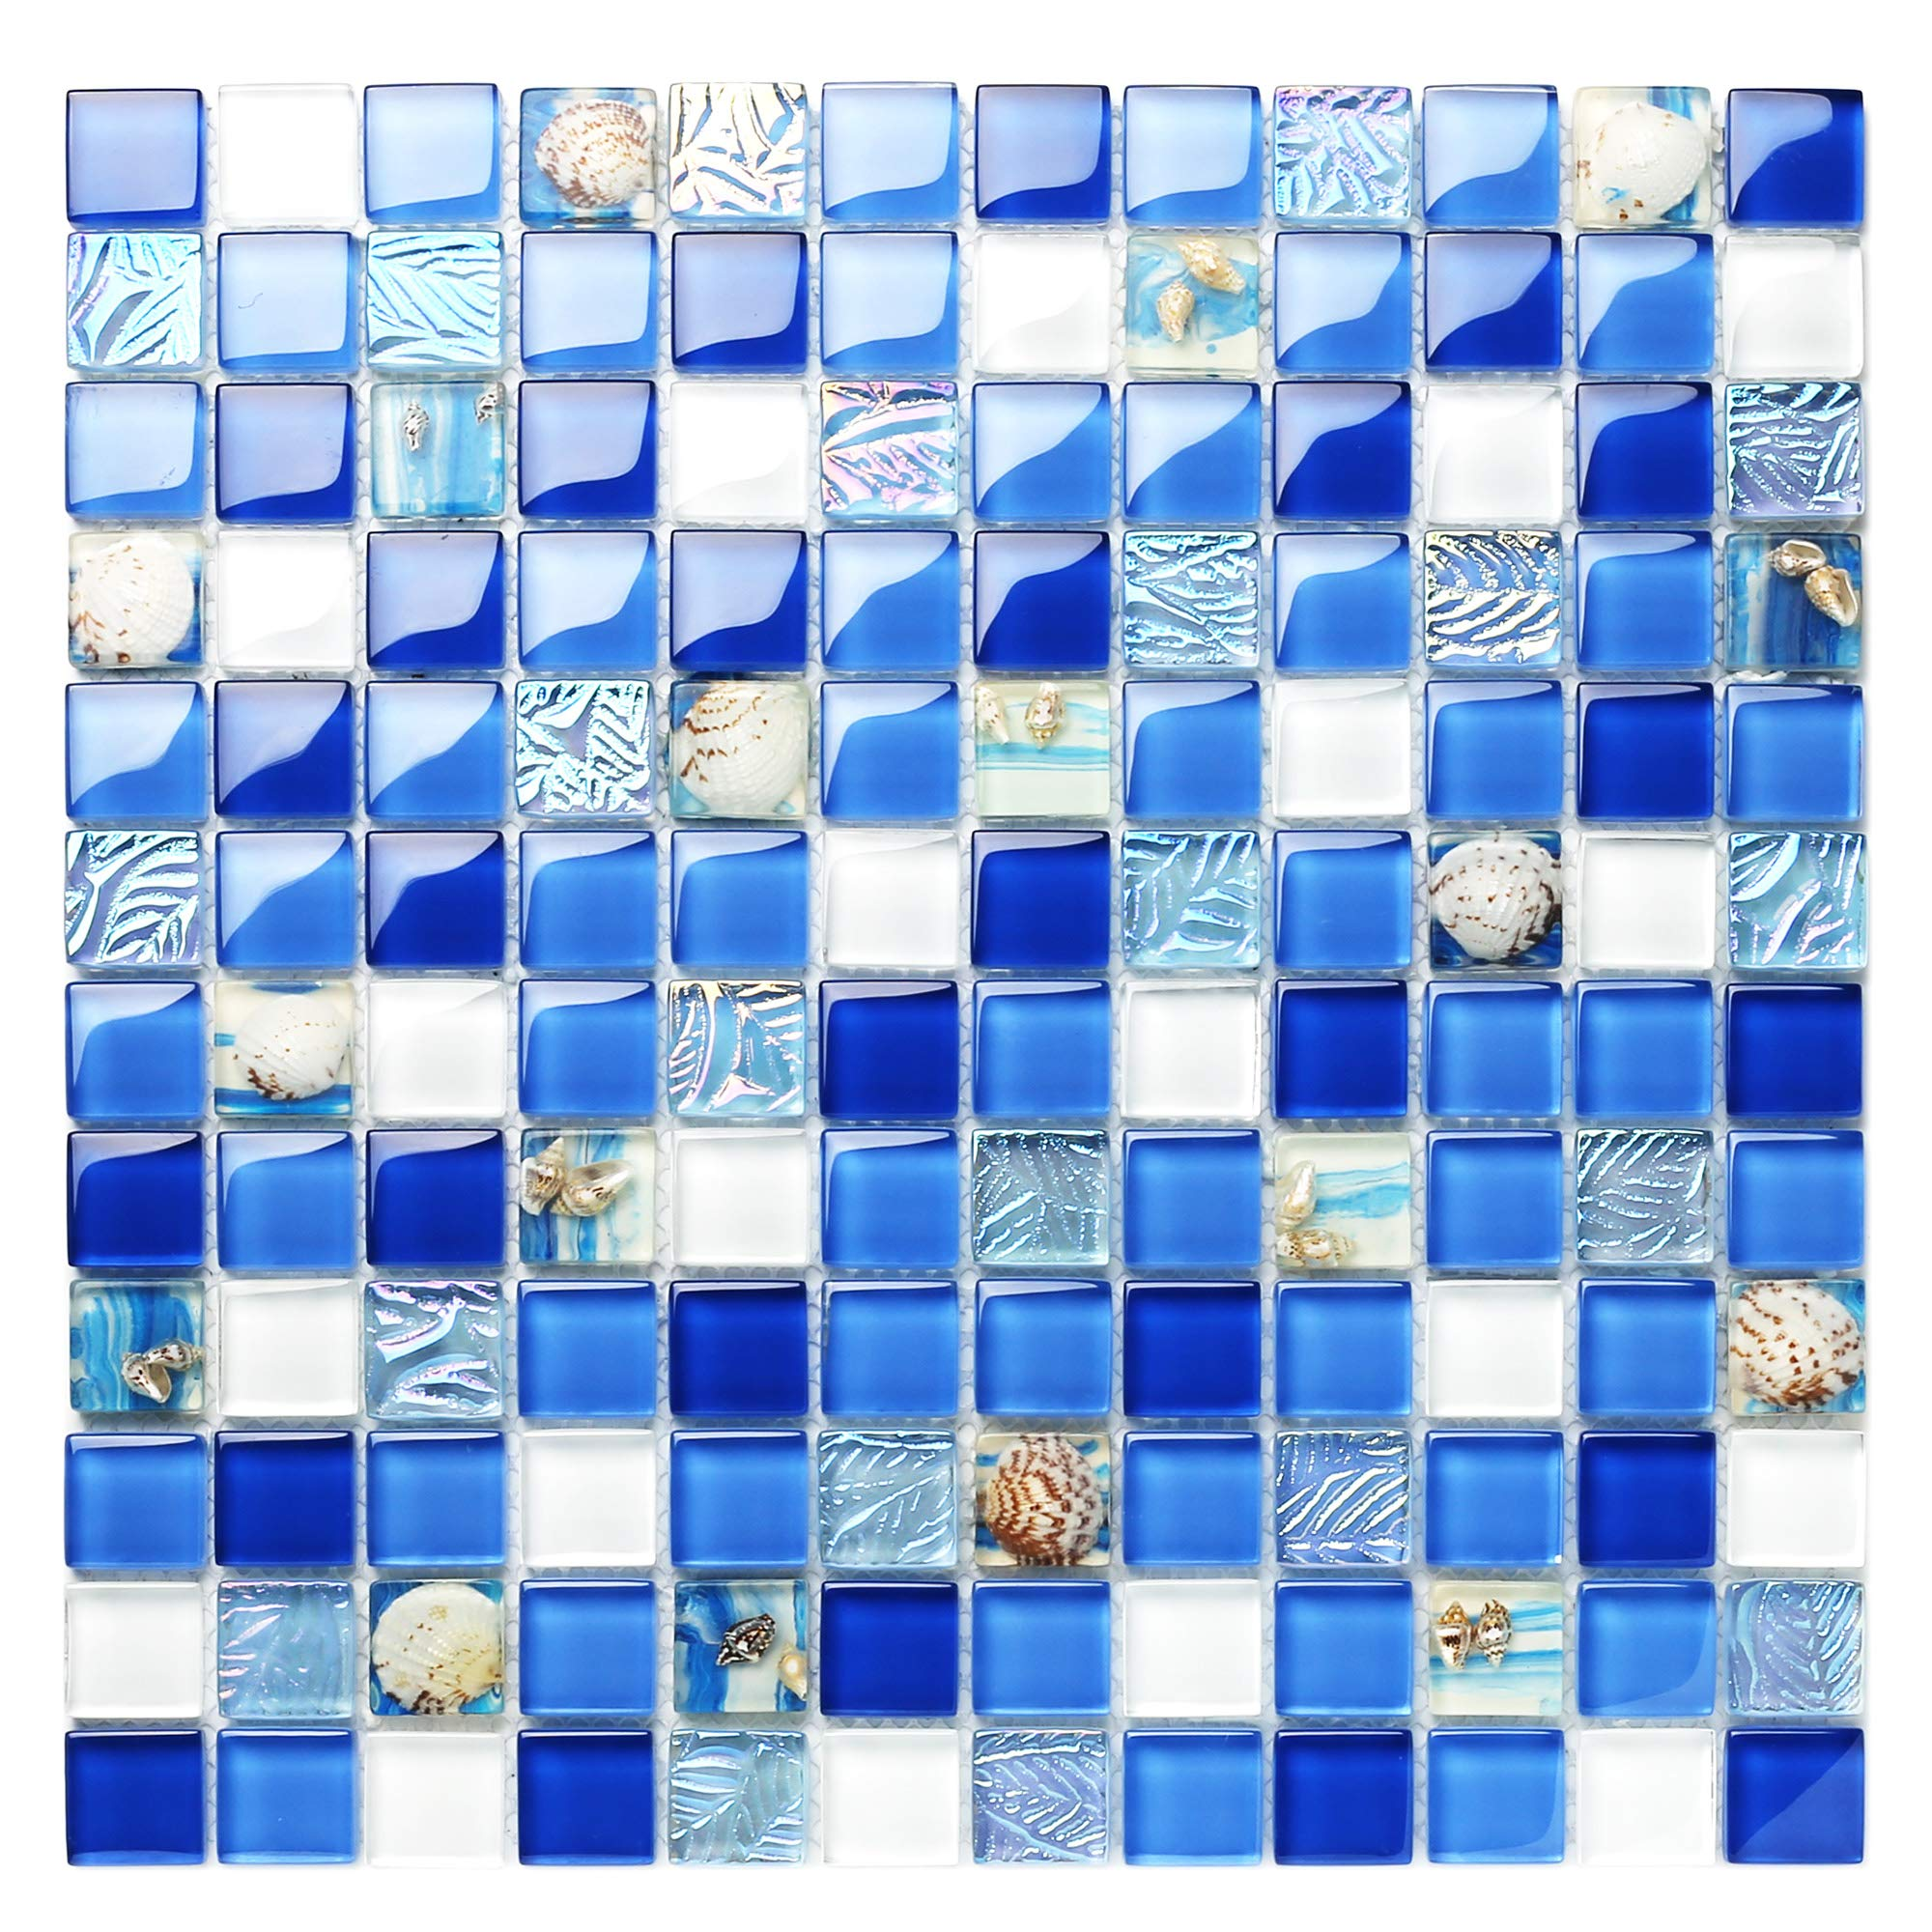 TST Glass Conch Tiles Beach Style Sea Blue White Glass Mosaic Mother of Pearl Resin for Bathroom Shower TSTNB07 (5 Square Feet) by BLUJELLYFISH